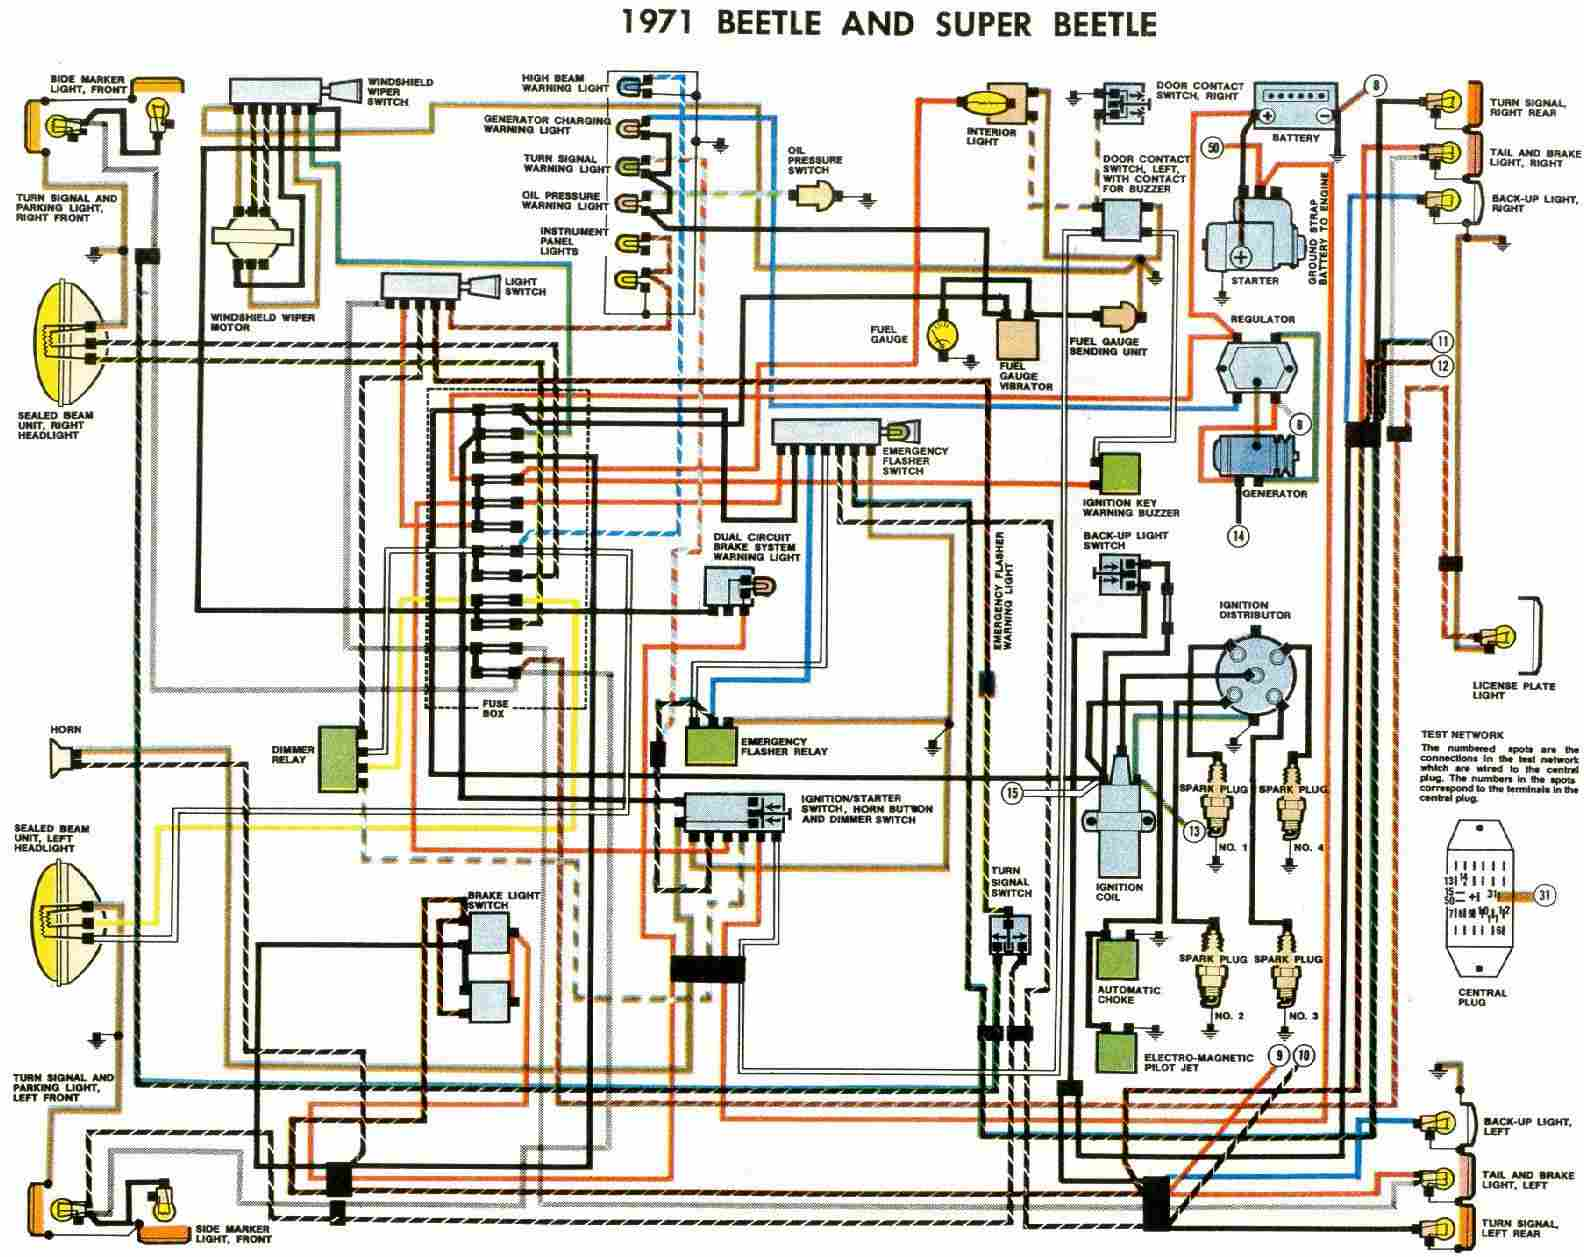 hight resolution of vw beetle and super beetle 1971 electrical wiring diagram skoda fabia power steering wiring diagram skoda